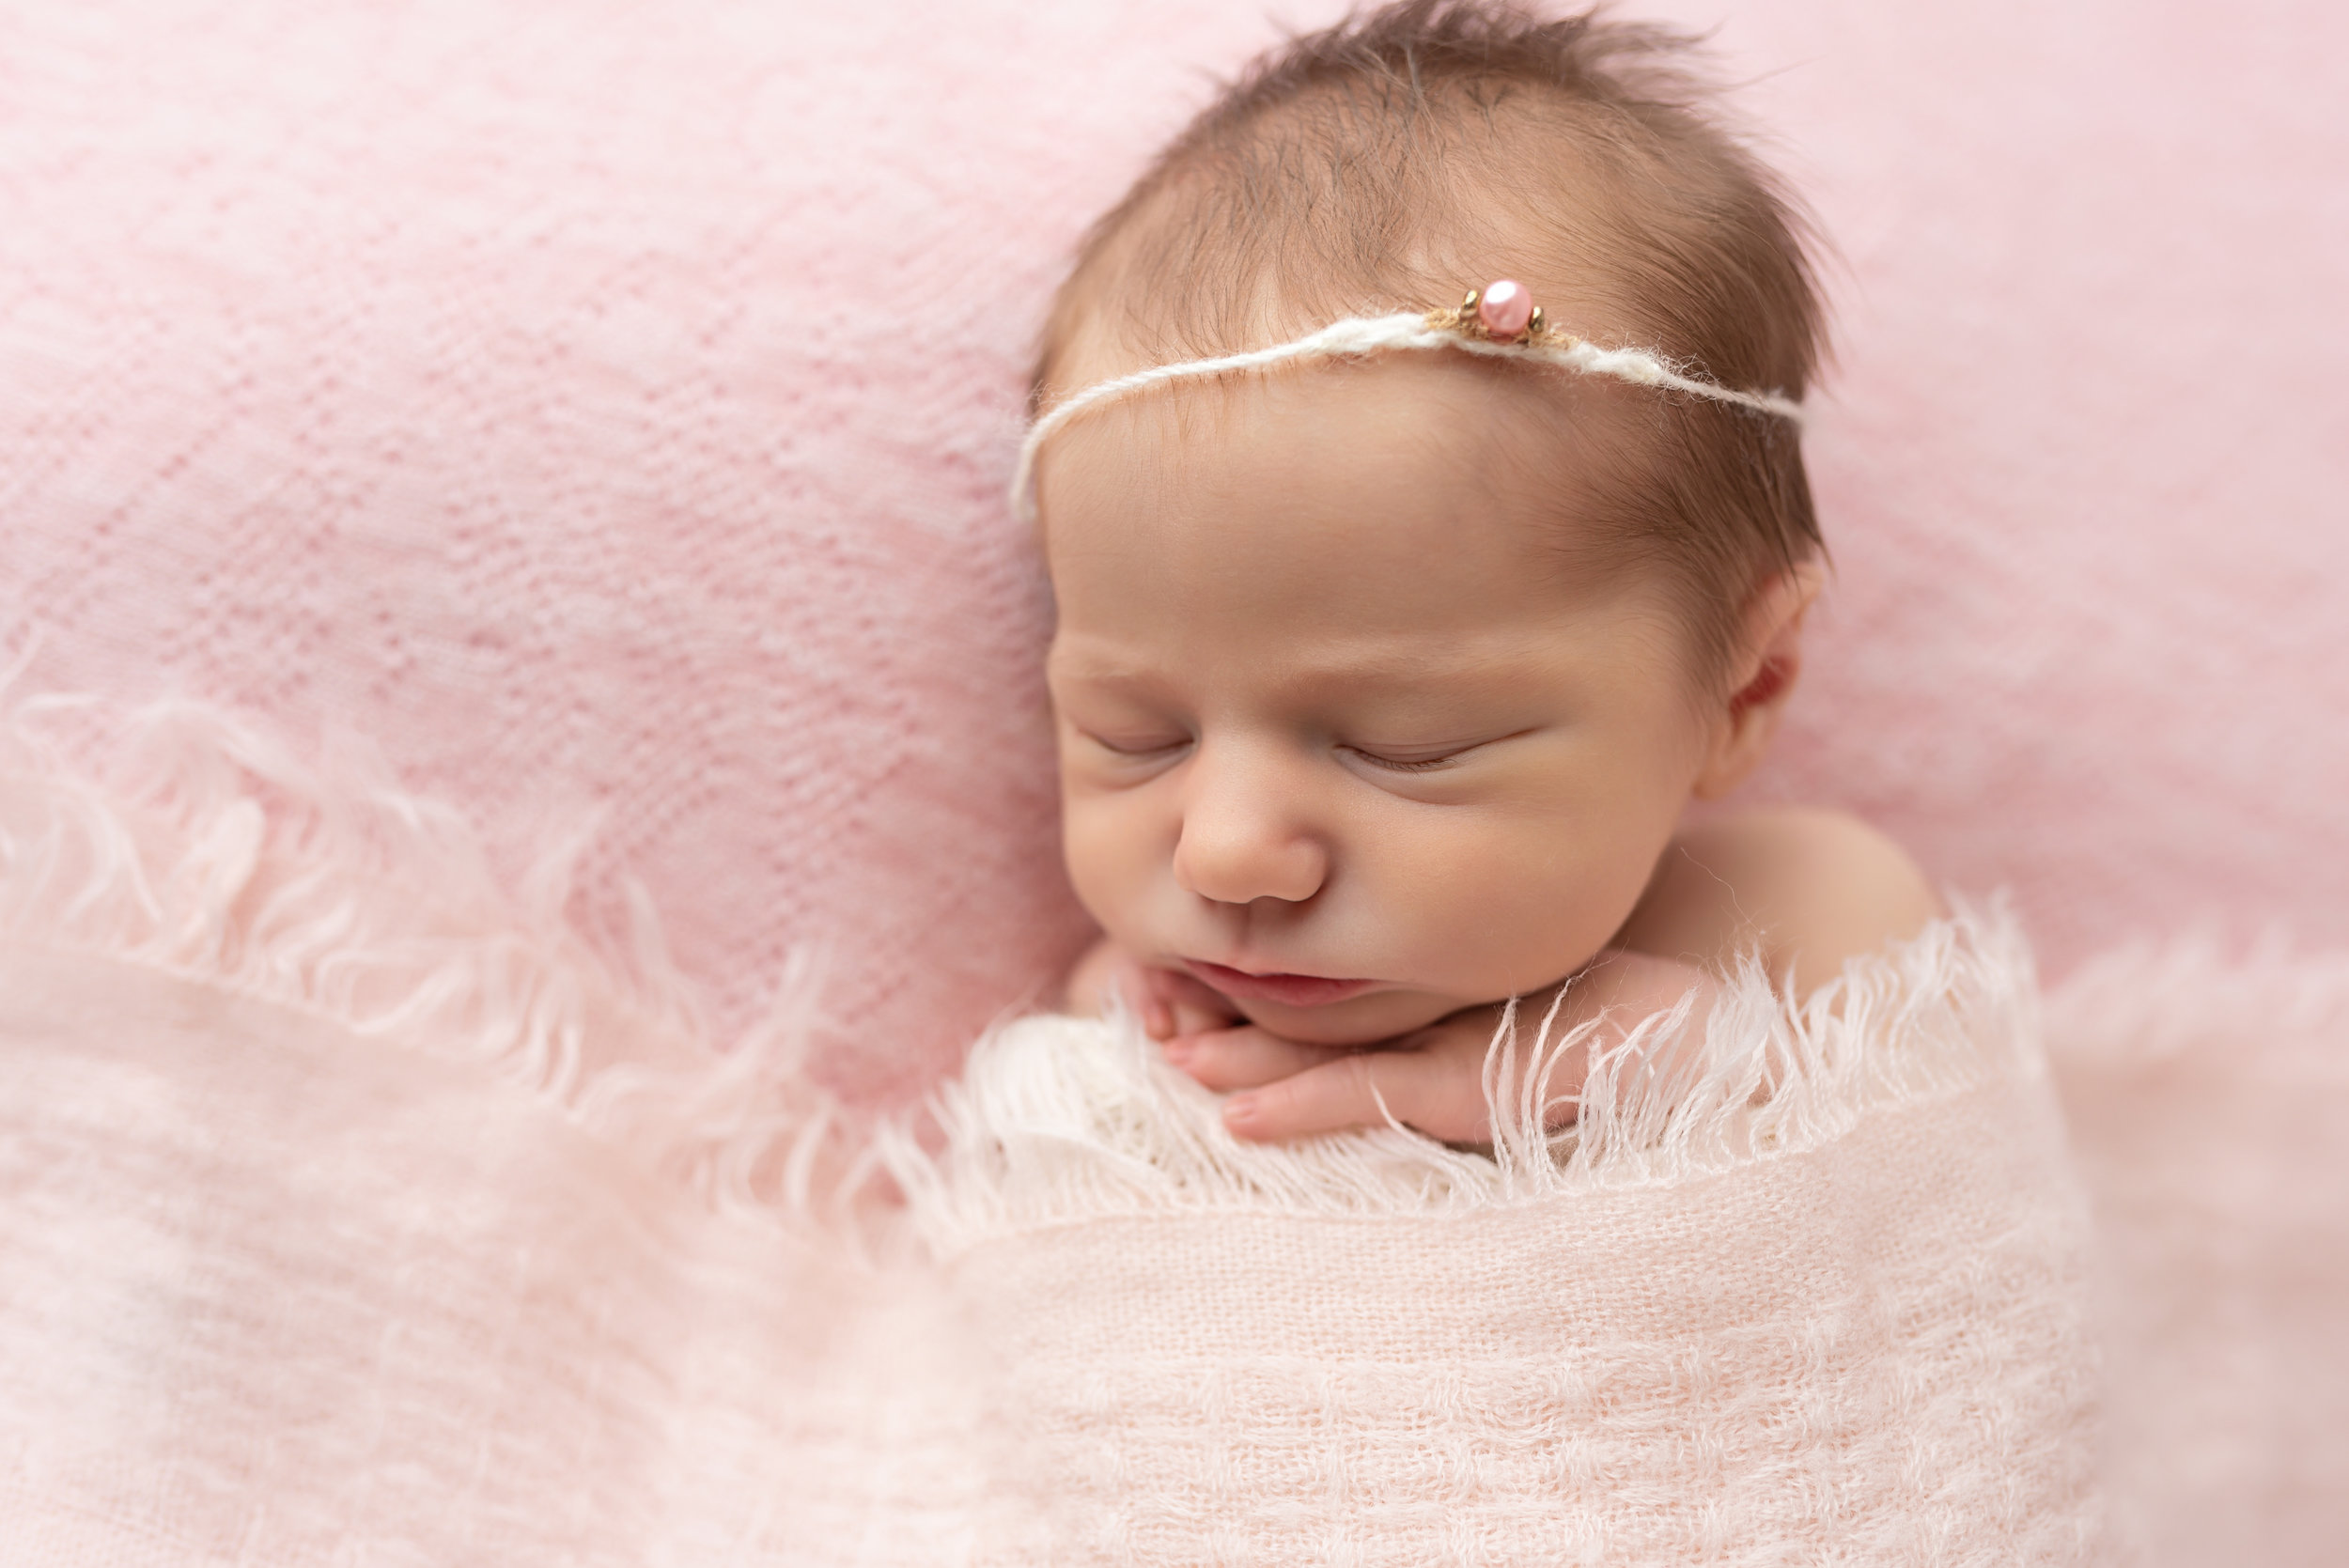 Charleston-Newborn-Photographer-FSP_8774 copy.jpg